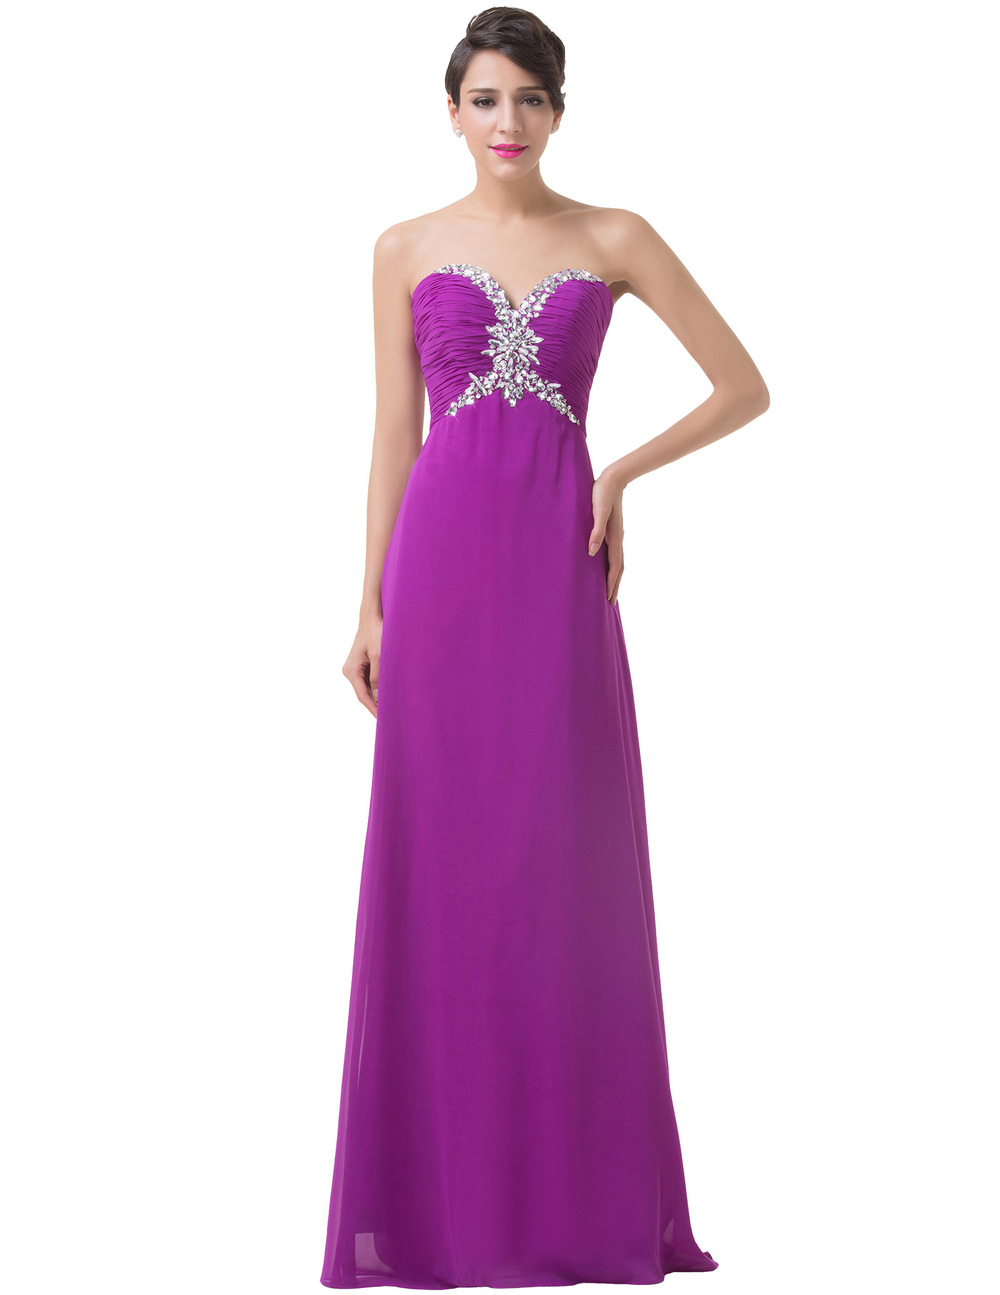 Grace karin build in bra strapless prom dresses women formal gowns grace karin build in bra strapless prom dresses women formal gowns purple dress chiffon long bridesmaid ombrellifo Image collections